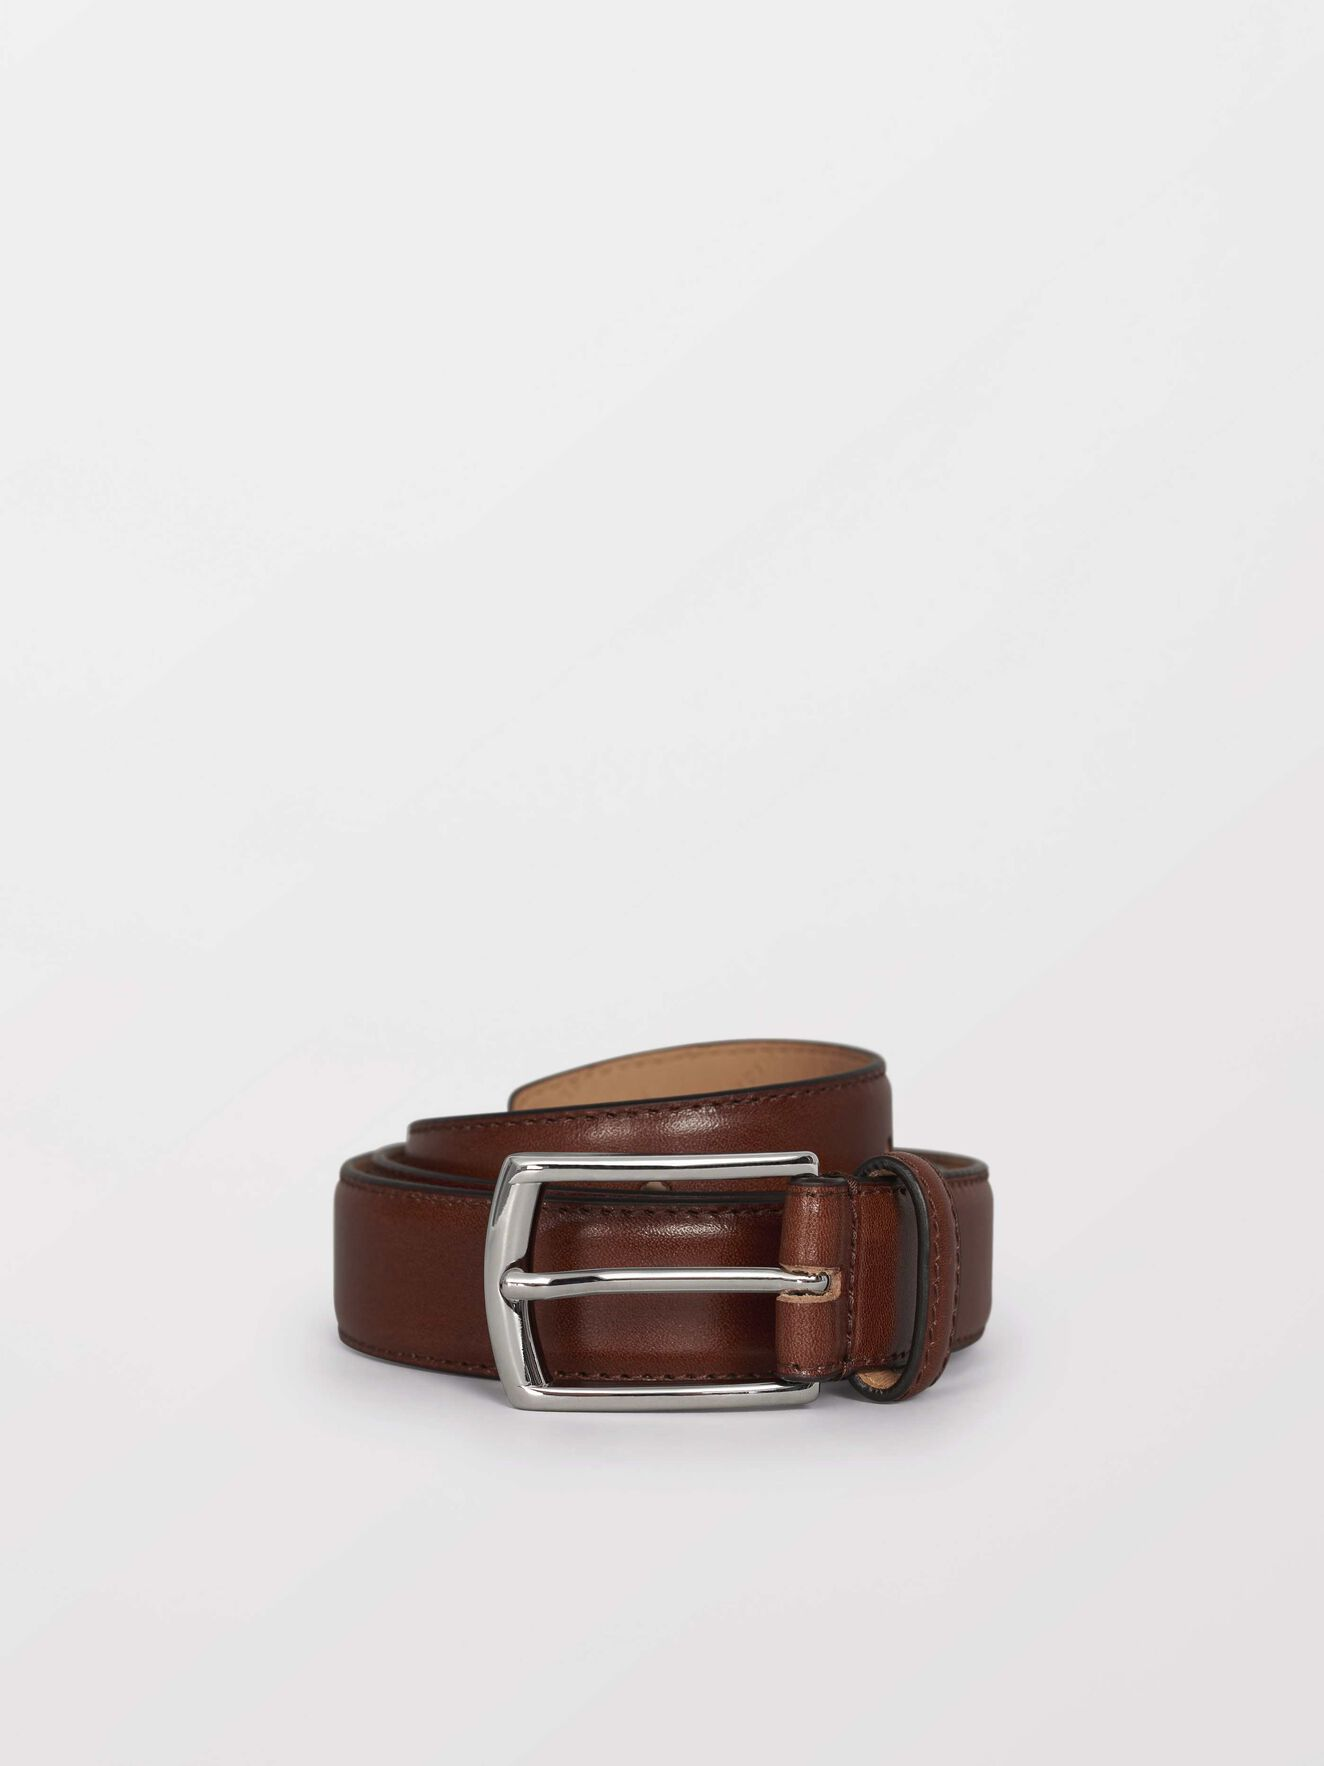 Bannir Belt in Cognac from Tiger of Sweden